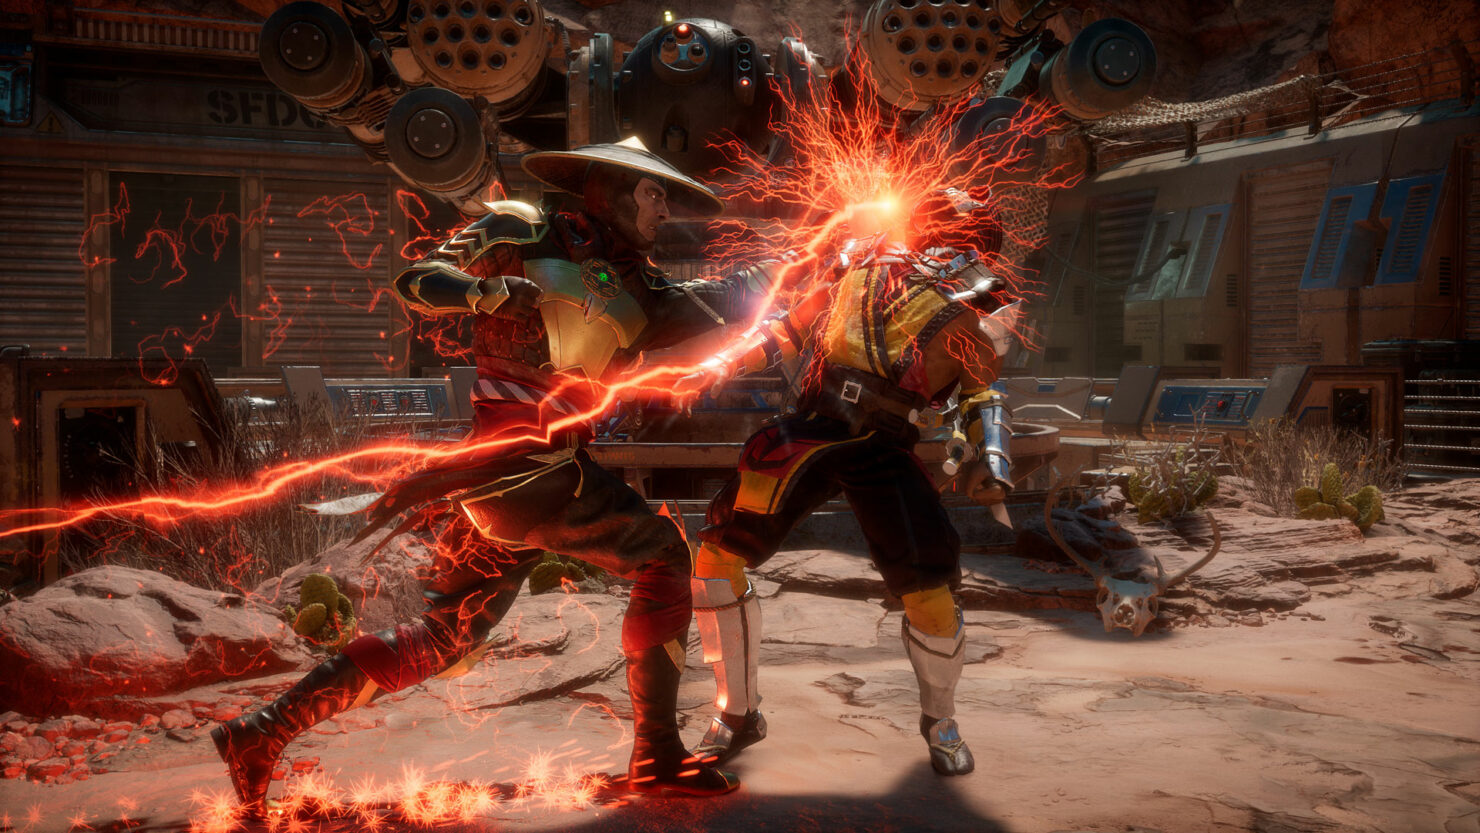 mortal-kombat-11-screenshots-7-1480x833.